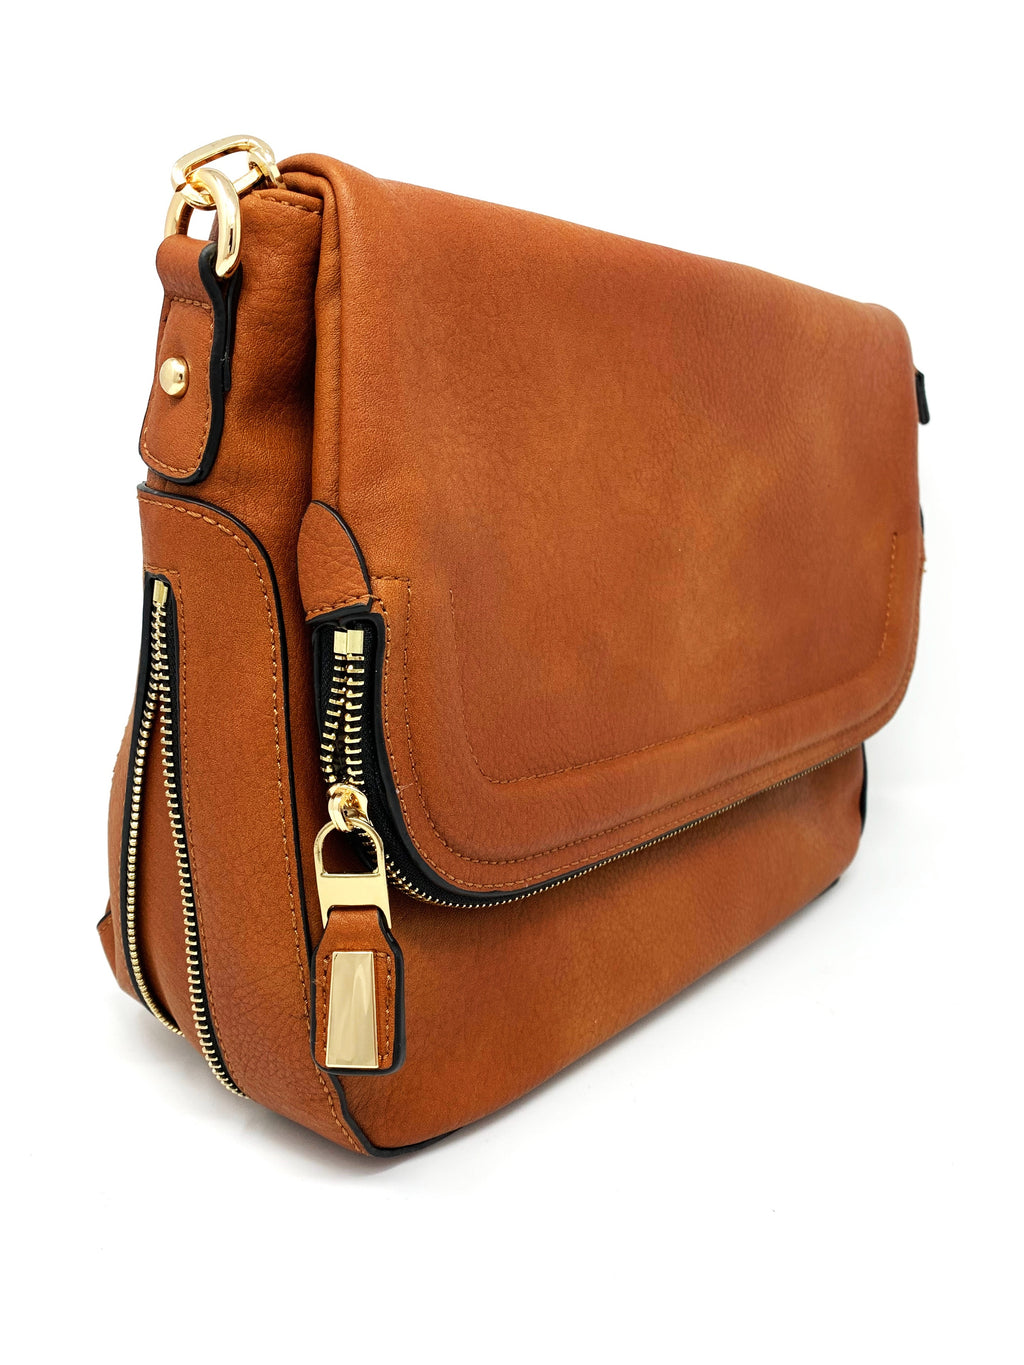 Zip Flap Hobo Bag in Cognac